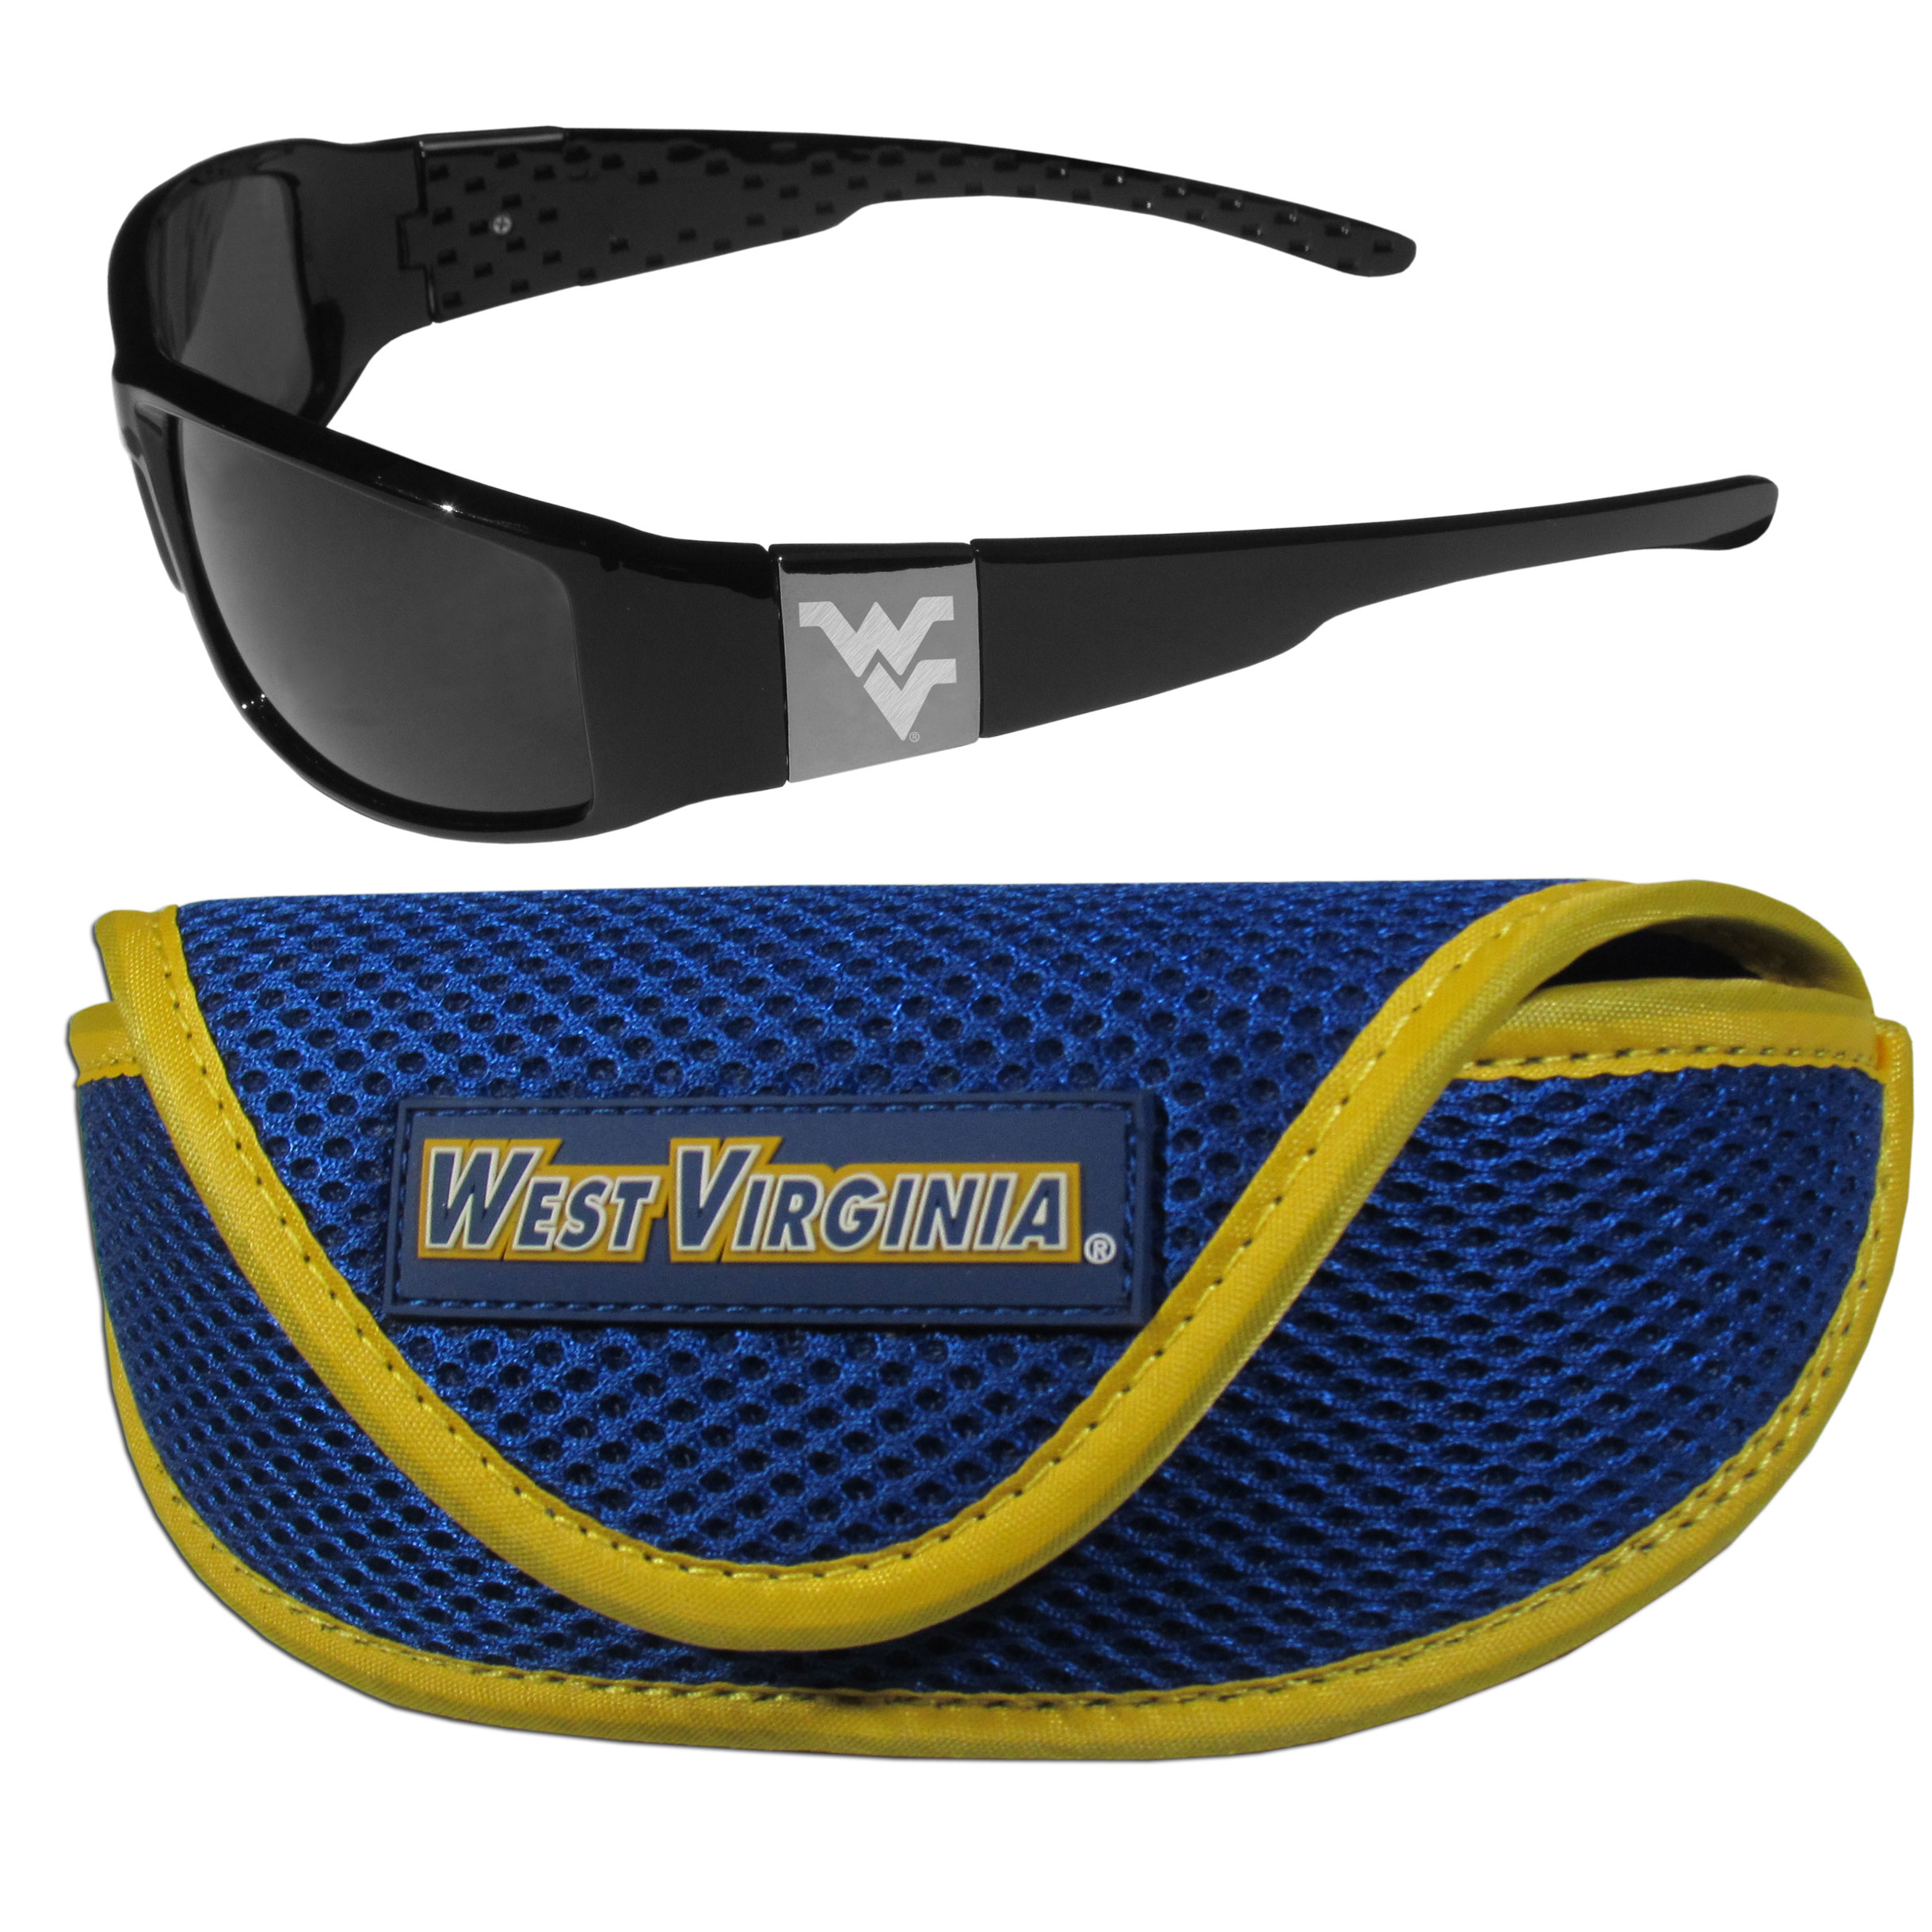 W. Virginia Mountaineers Chrome Wrap Sunglasses and Sport Carrying Case - These designer inspired frames have a sleek look in all black with high-polish chrome W. Virginia Mountaineers shields on each arm with an etched logo. The shades are perfect any outdoor activity like; golfing, driving, hiking, fishing or cheering on the team at a tailgating event or an at home game day BBQ with a lens rating of 100% UVA/UVB for maximum UV protection. The high-quality frames are as durable as they are fashionable and with their classic look they are perfect fan accessory that can be worn everyday for every occasion. The shades come with a zippered hard shell case to keep your sunglasses safe.